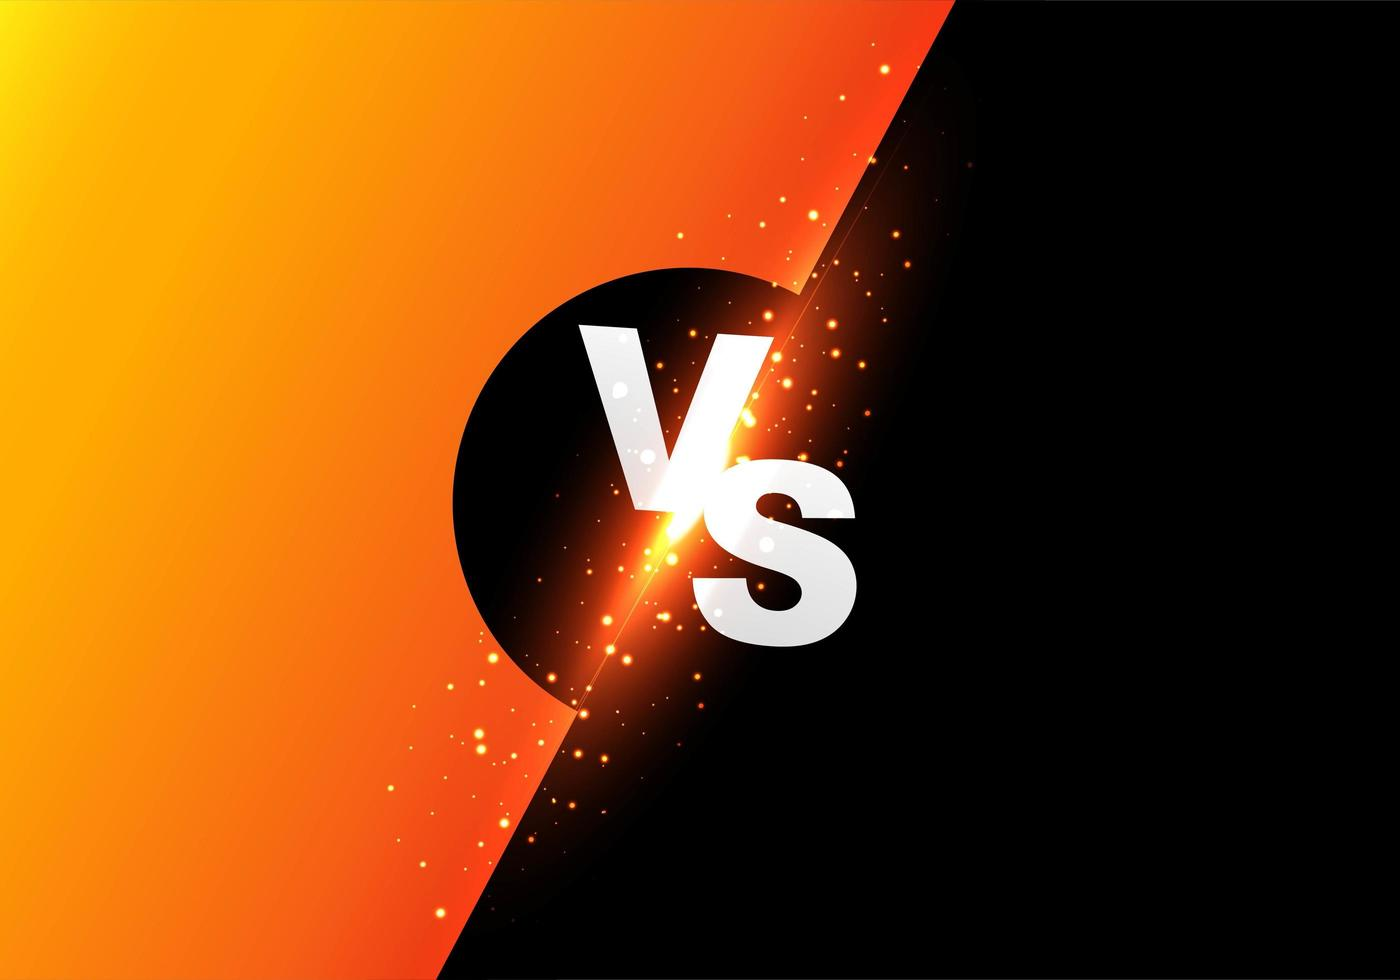 Versus Screen Bright Contrast Background  vector